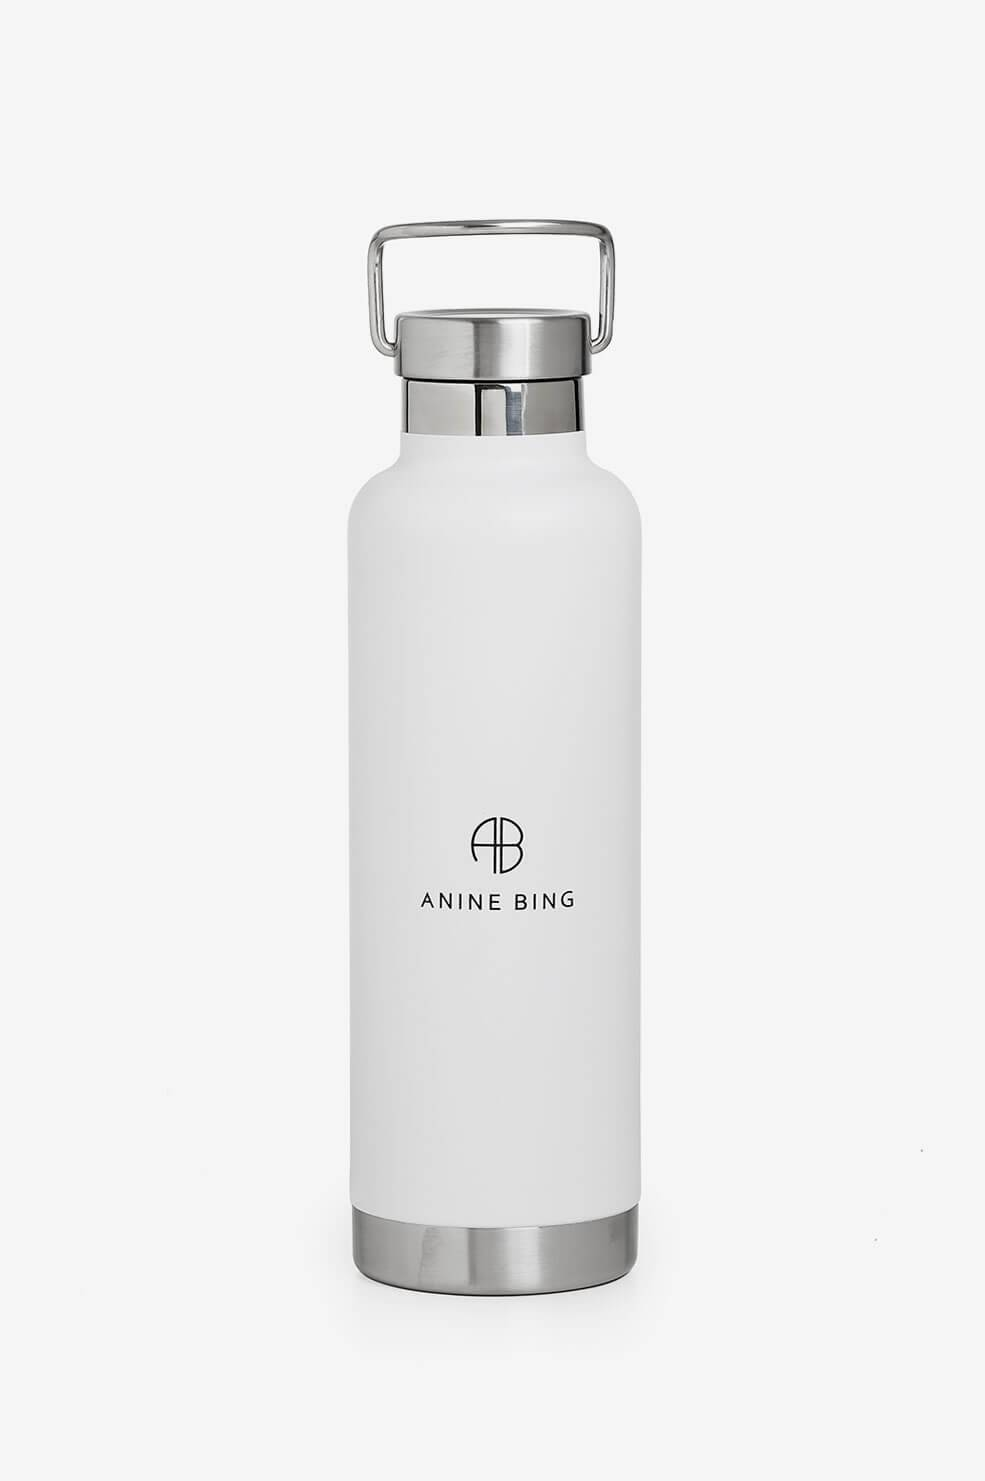 ANINE BING Pia Water Bottle in White  - White - Size: Default Title